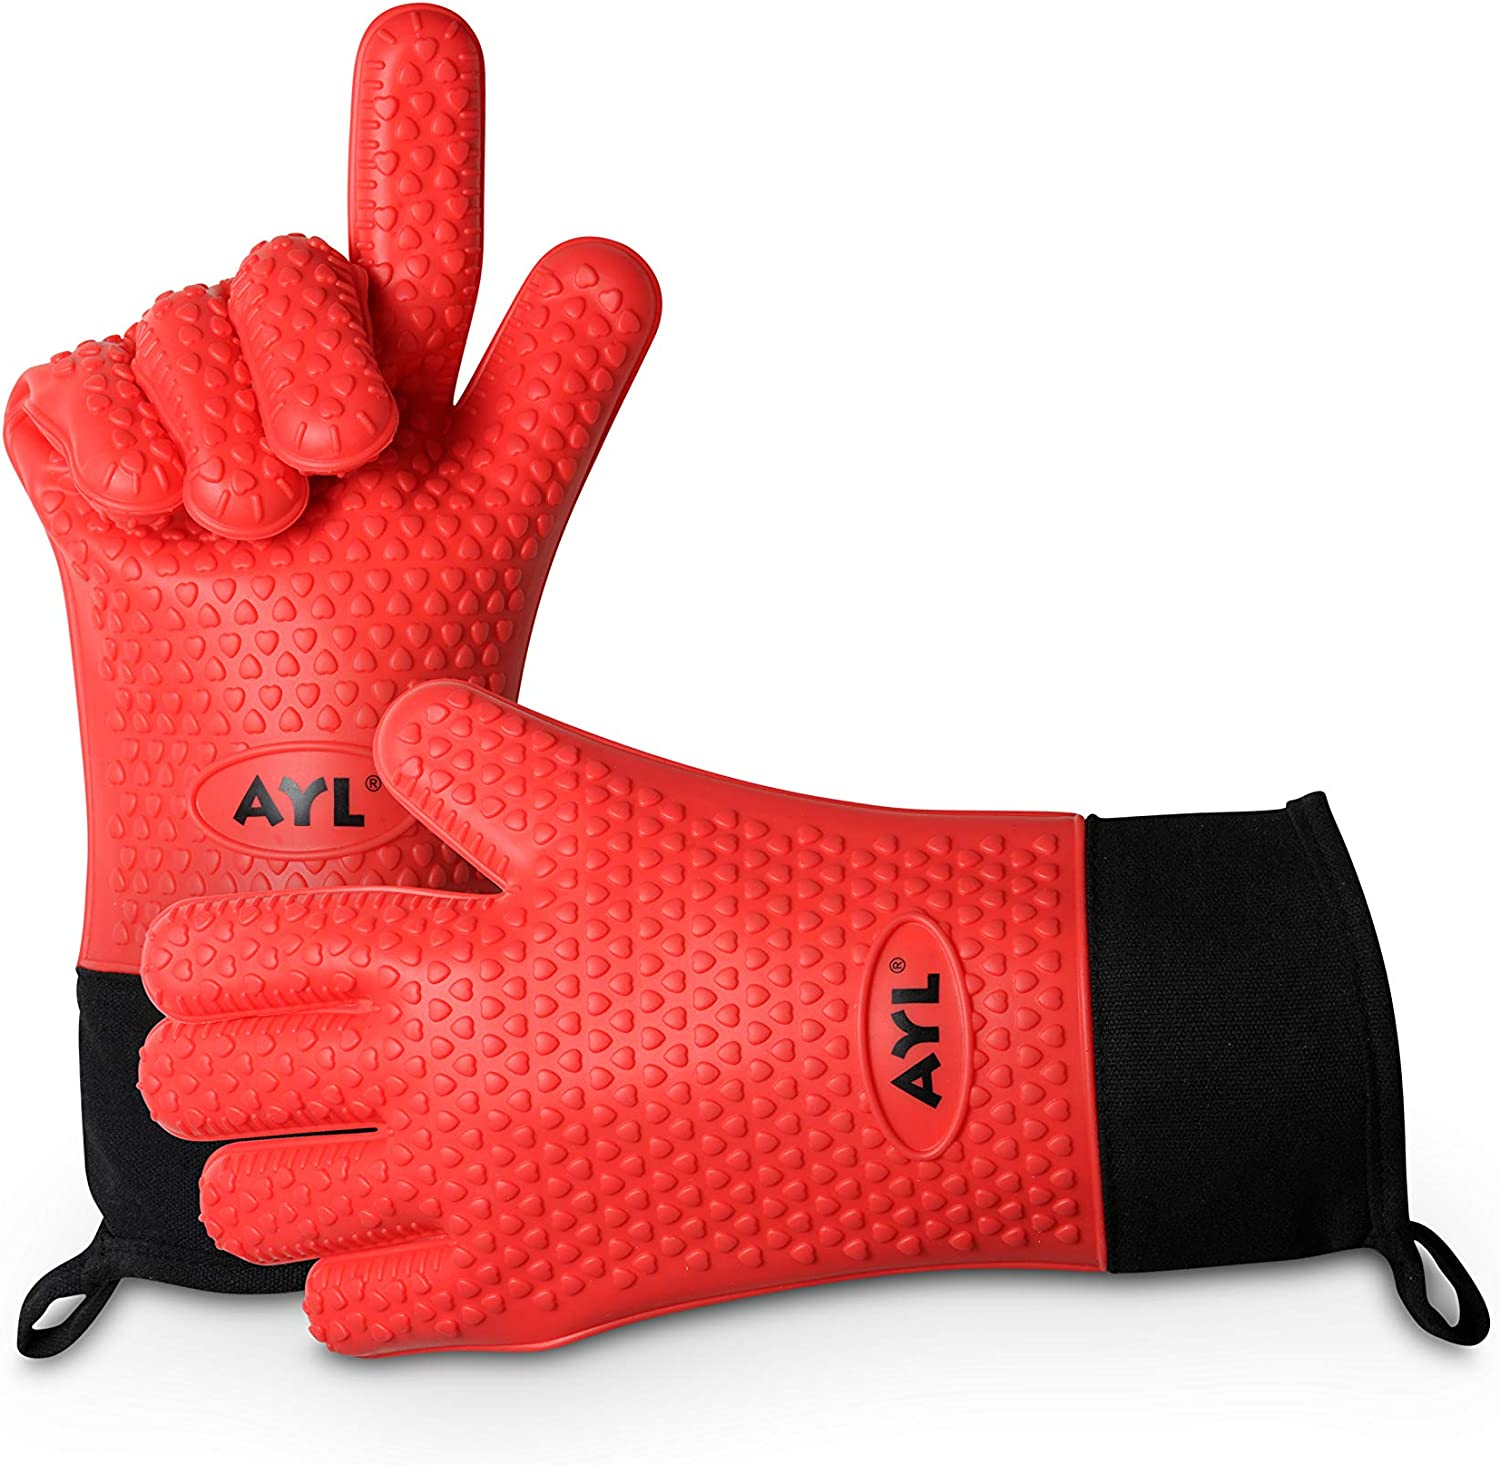 AYL Long Silicone Cooking Gloves - Long Sleeves, Heat Resistant Oven Mitt for Grilling, BBQ, Kitchen, Baking - Safe Handling of Pots and Pans - Internal Protective Cotton Layer (Red Extra Long)